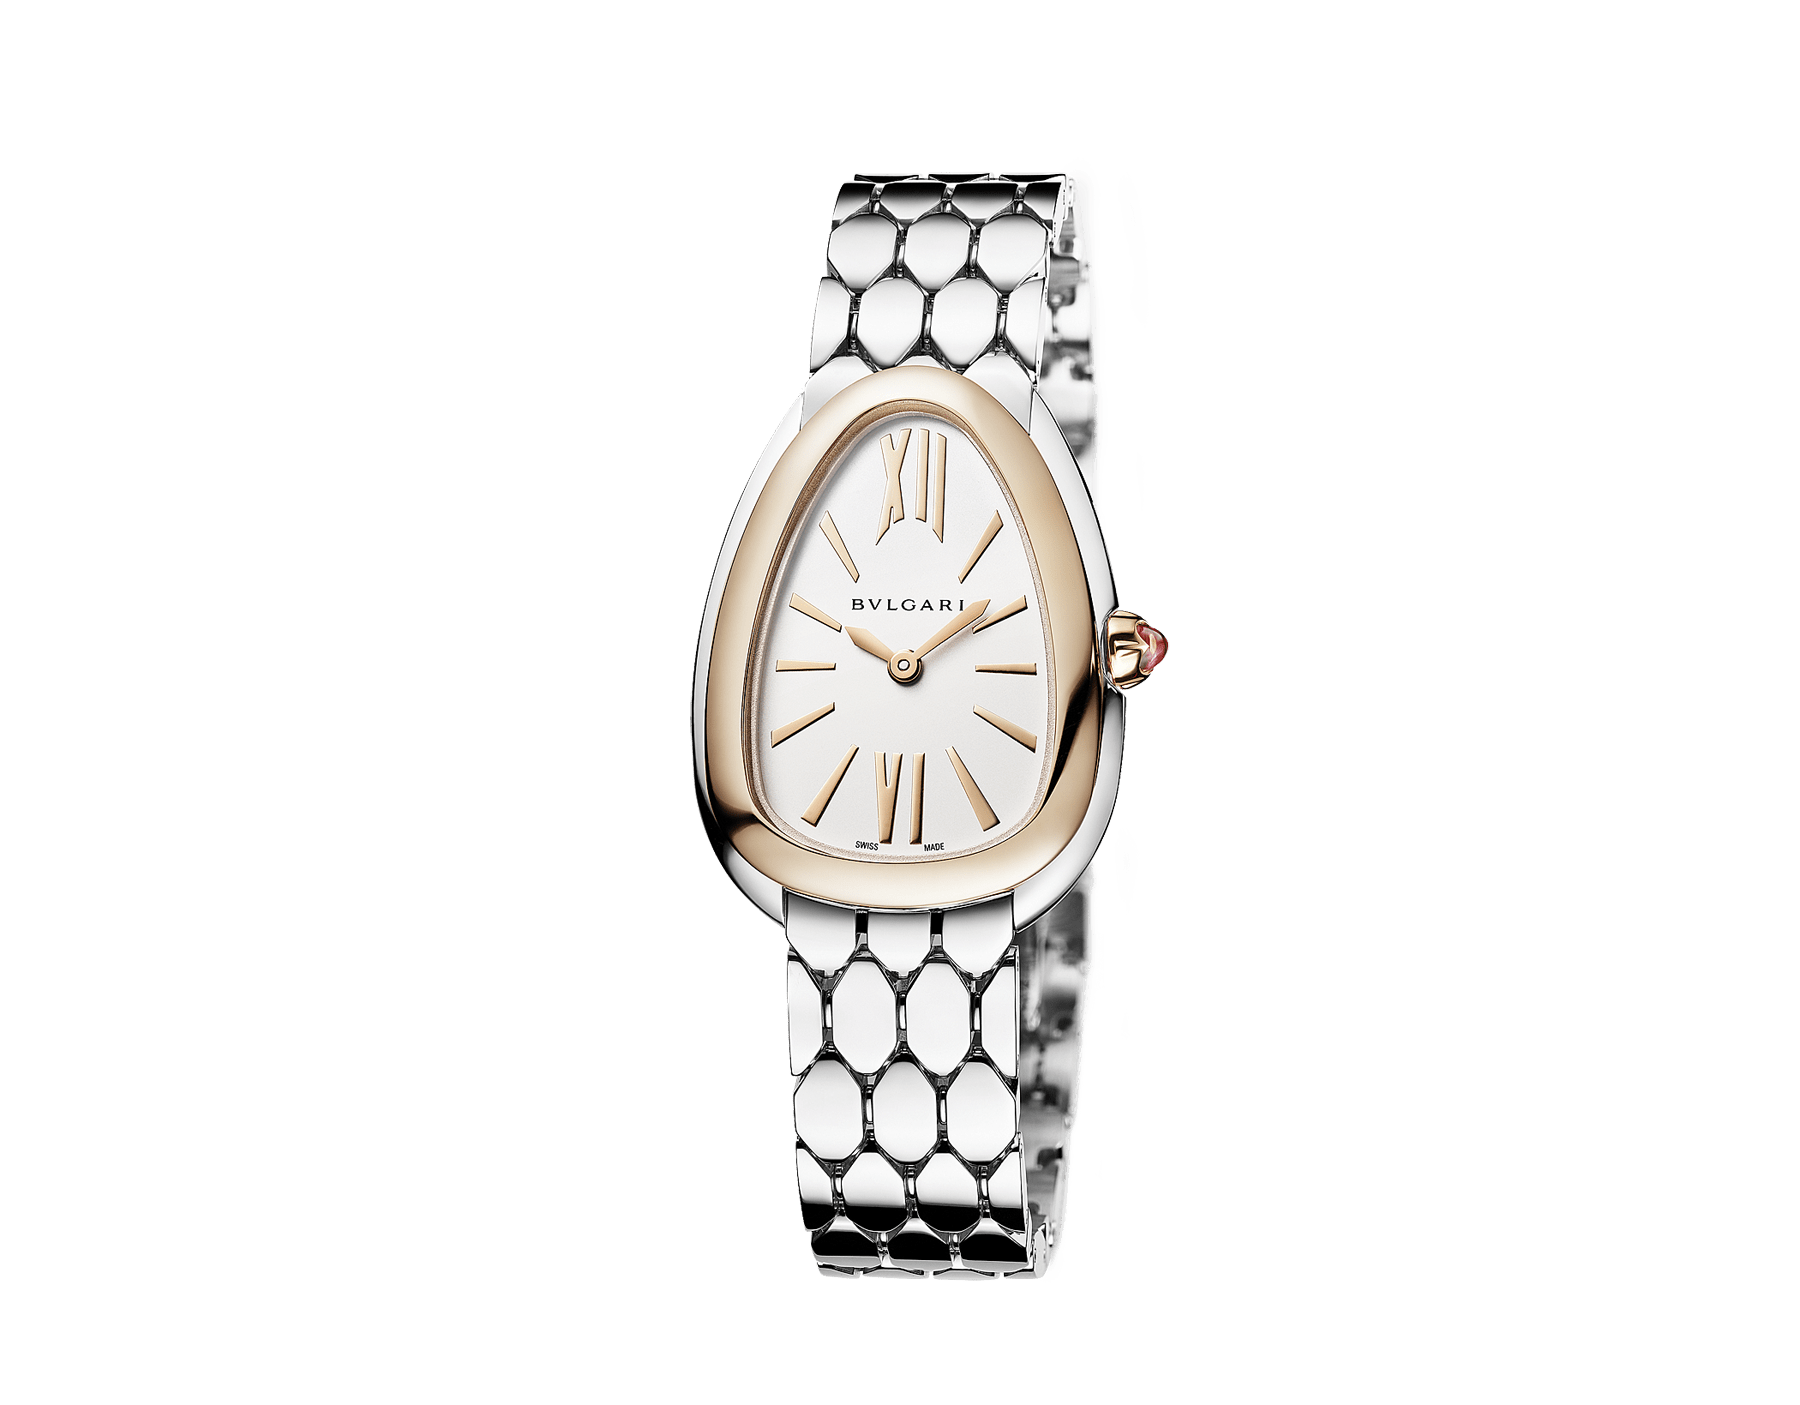 Serpenti Seduttori watch with stainless steel case, stainless steel bracelet, 18 kt rose gold bezel and a white silver opaline dial. 103144 image 2